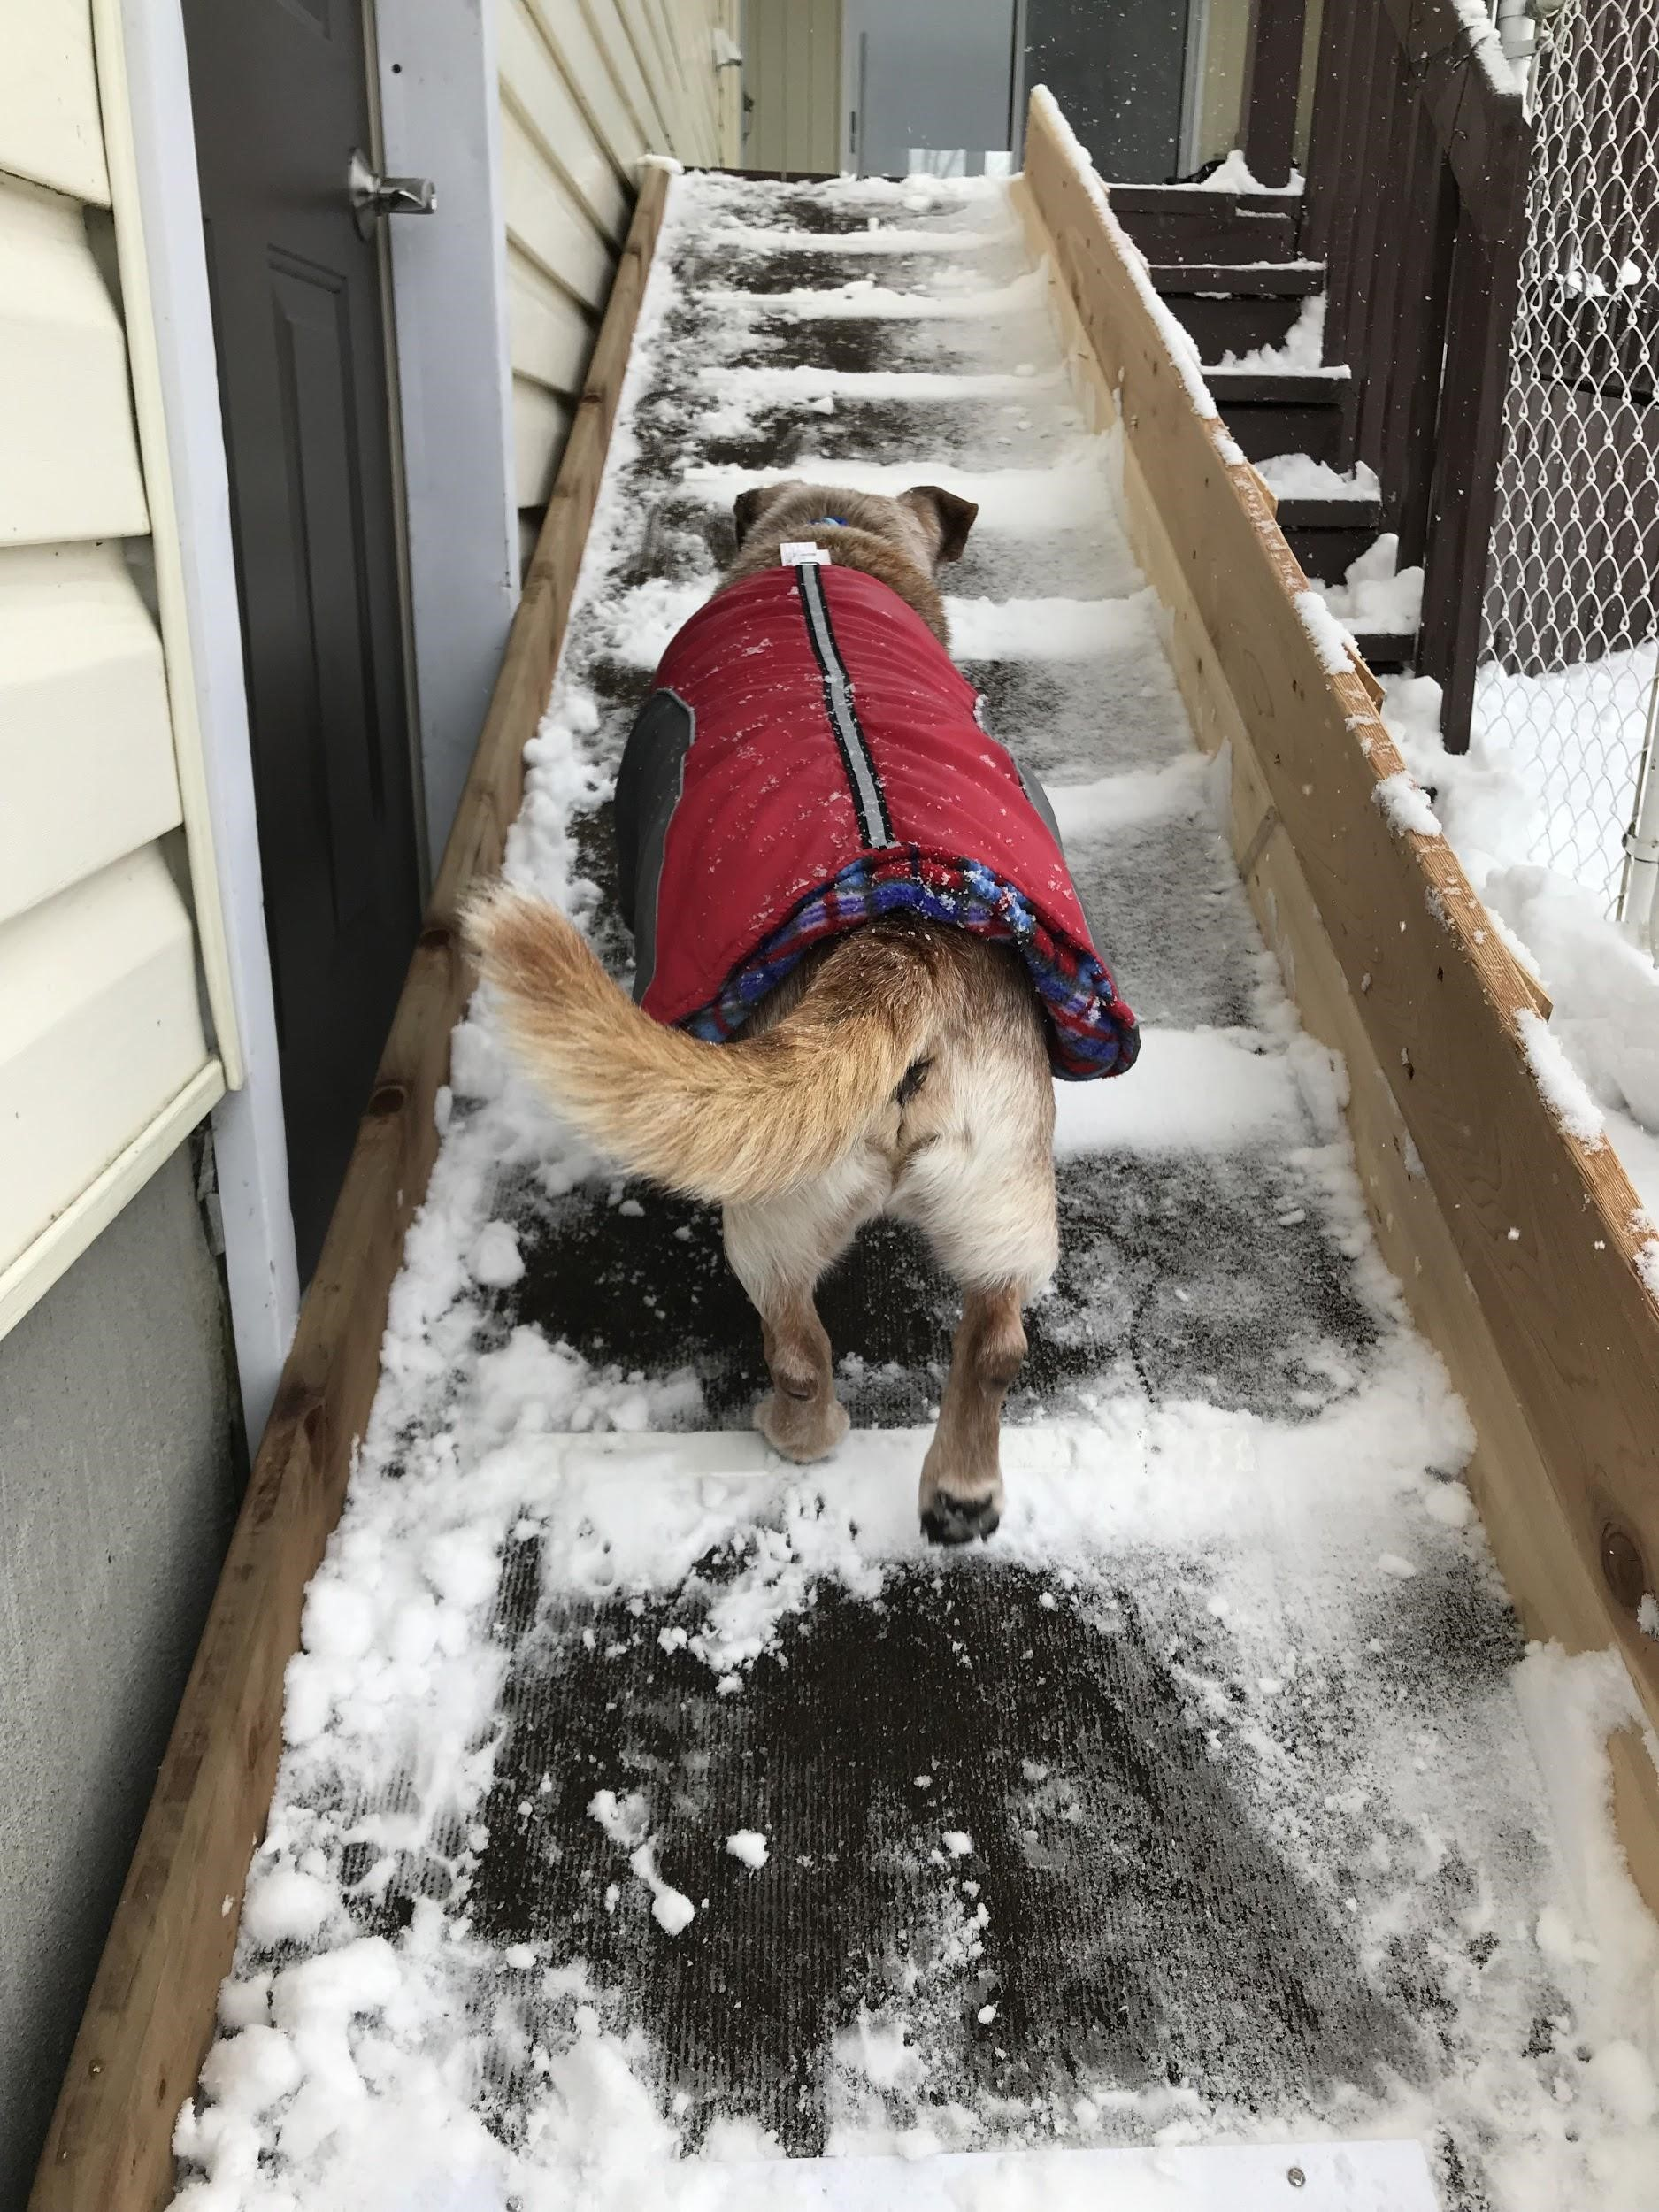 Back view of a dog wearing a jacket and walking up snowy stairs